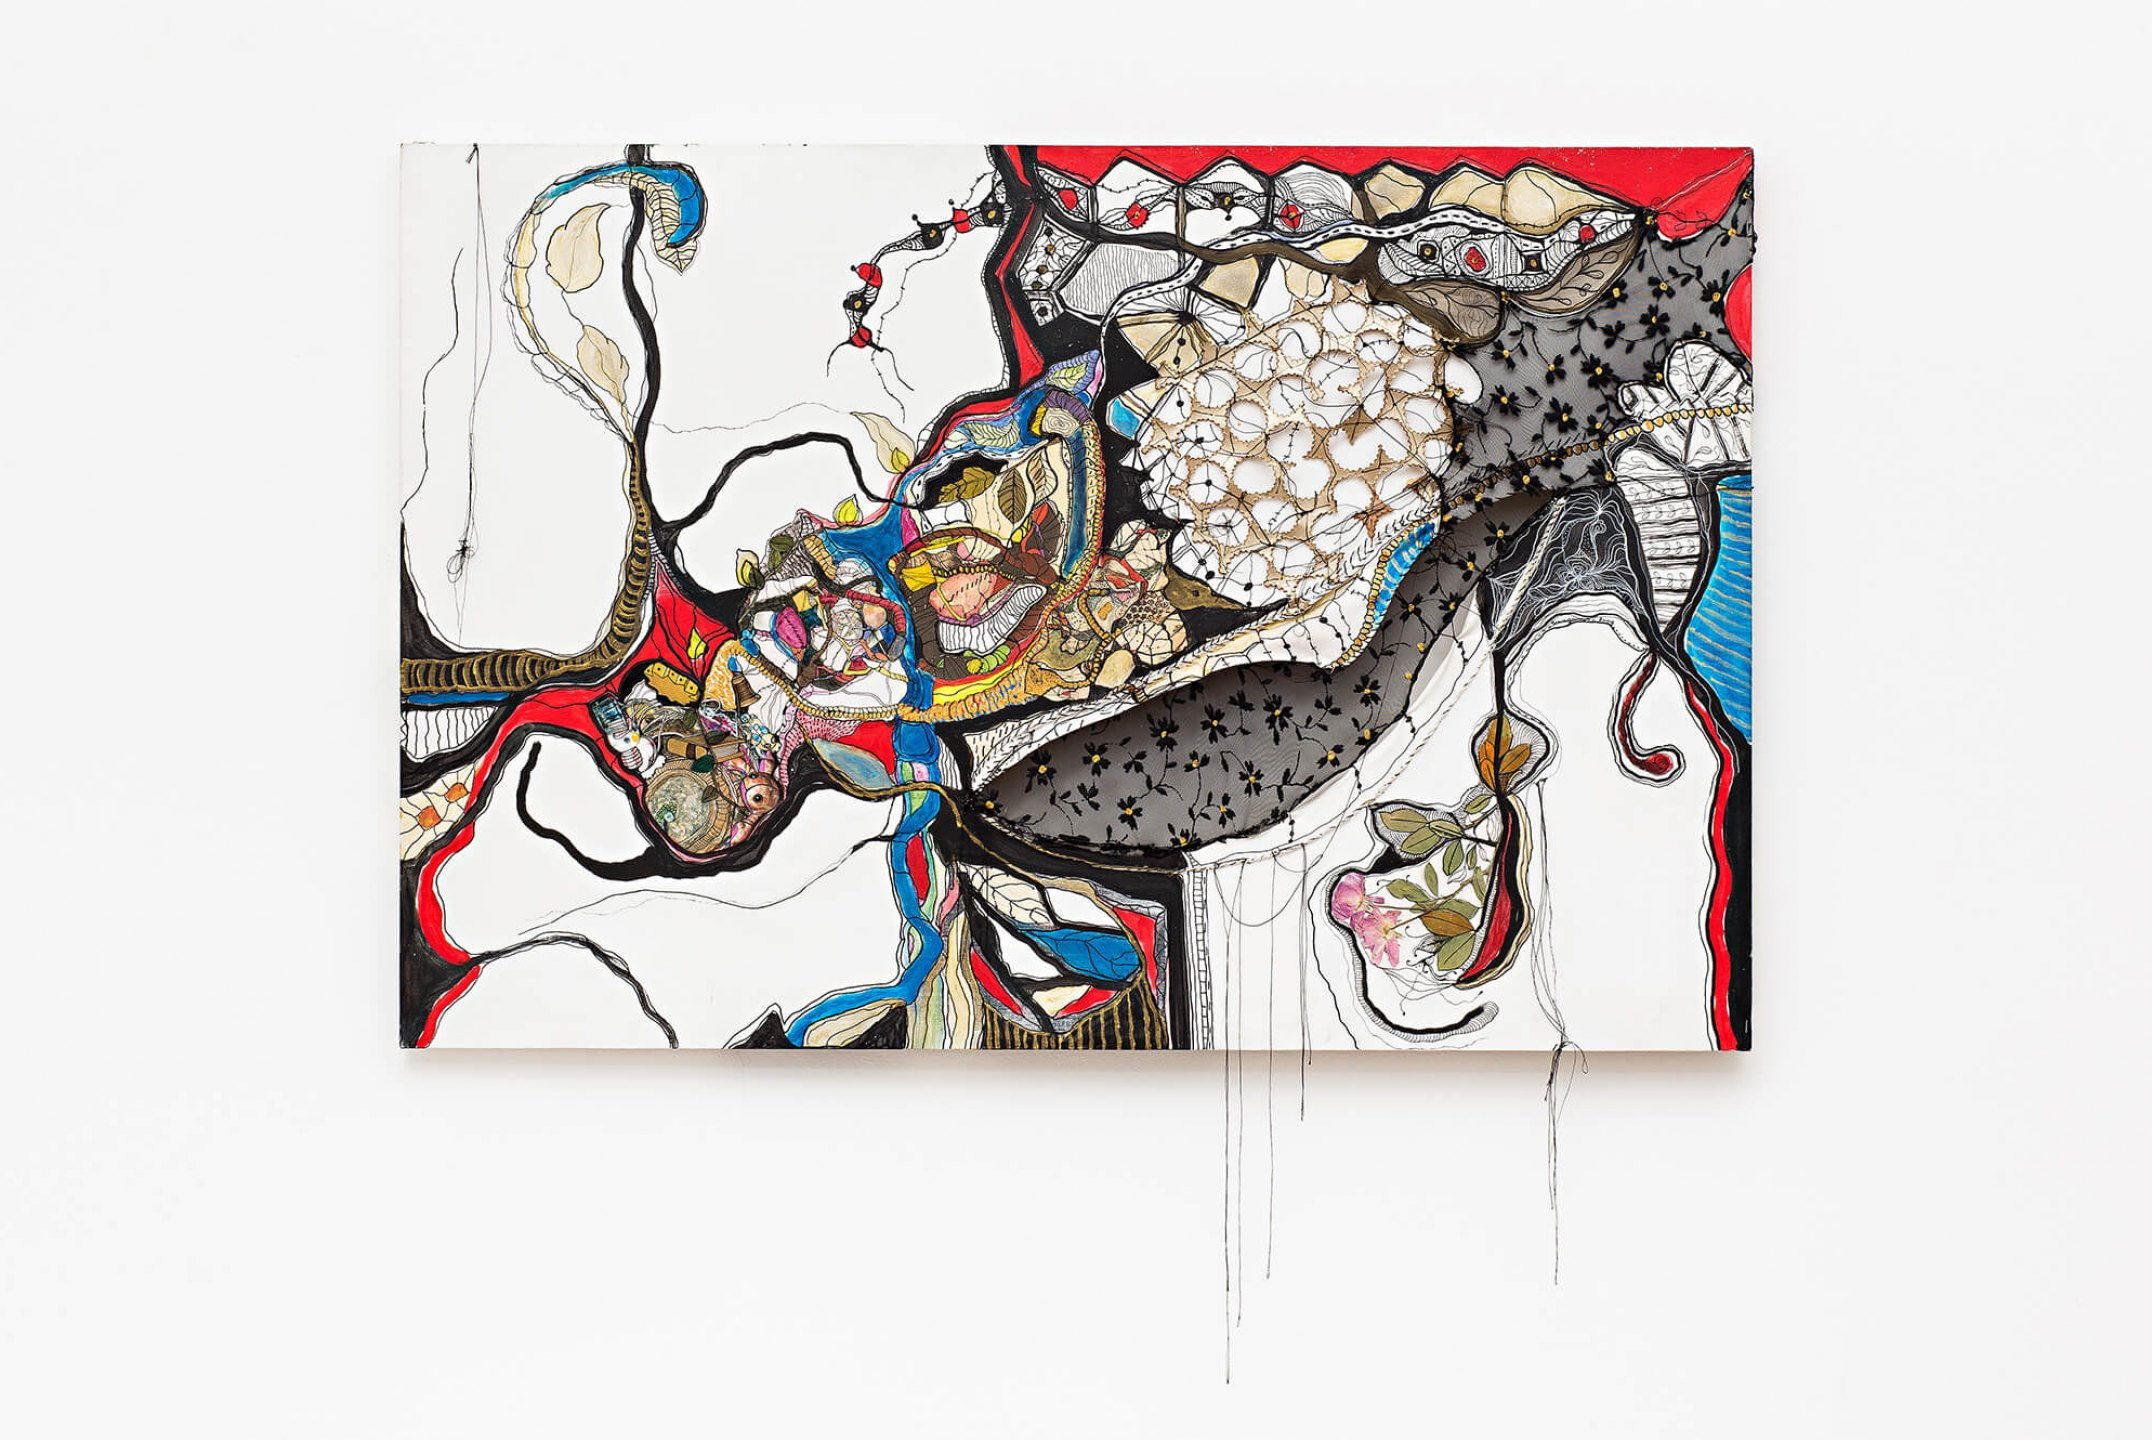 Sonia Gomes, <em>Por Que?</em>, 2009/2010, mixed media, acrylic, watercolor, china ink, thread and fabric on canvas, 80 × 120 cm - Mendes Wood DM